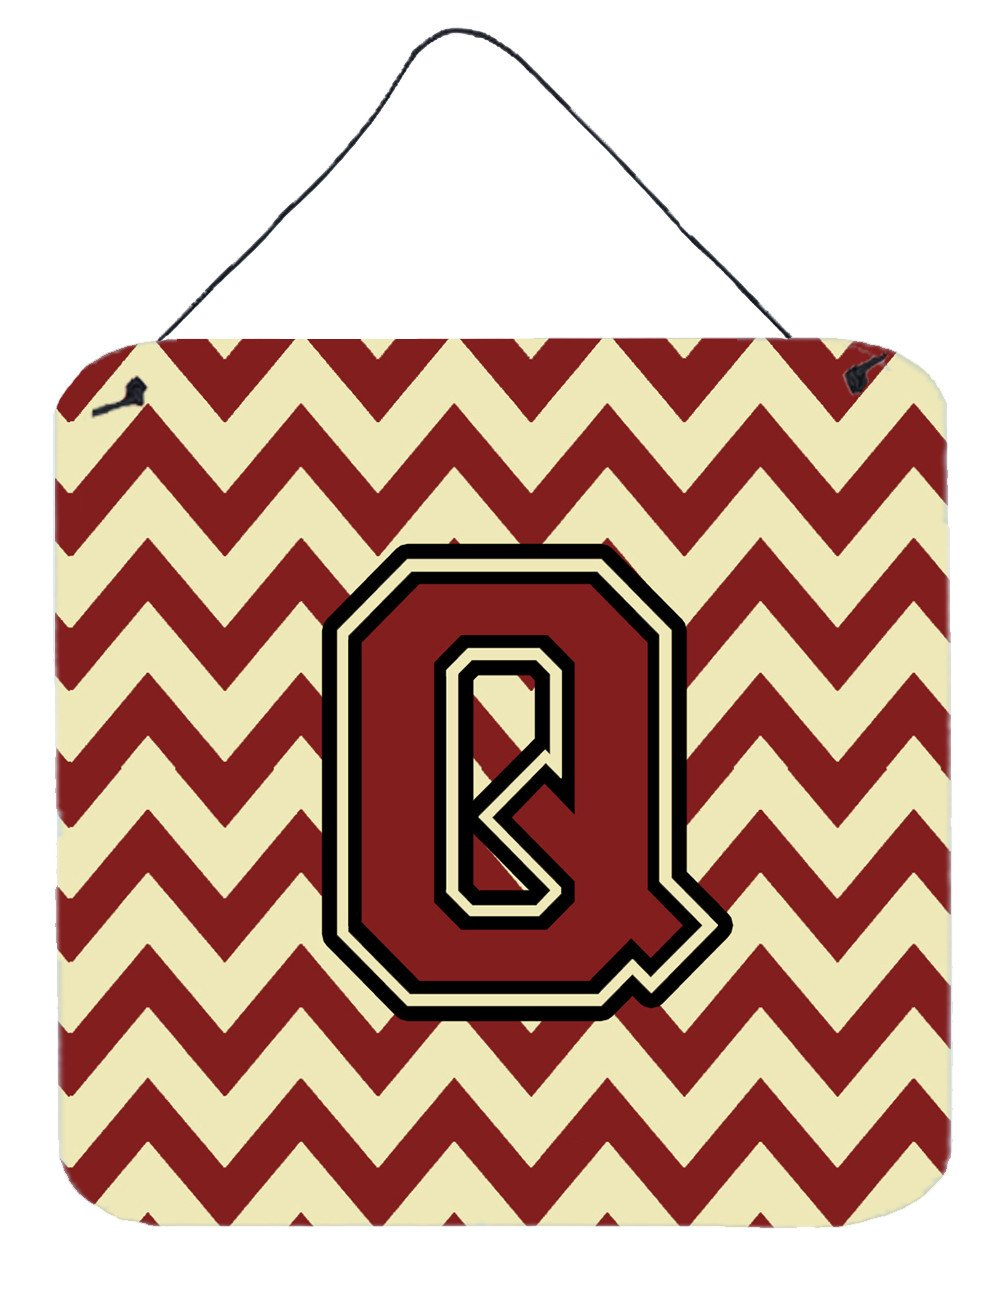 Letter Q Chevron Maroon and Gold Wall or Door Hanging Prints CJ1061-QDS66 by Caroline's Treasures